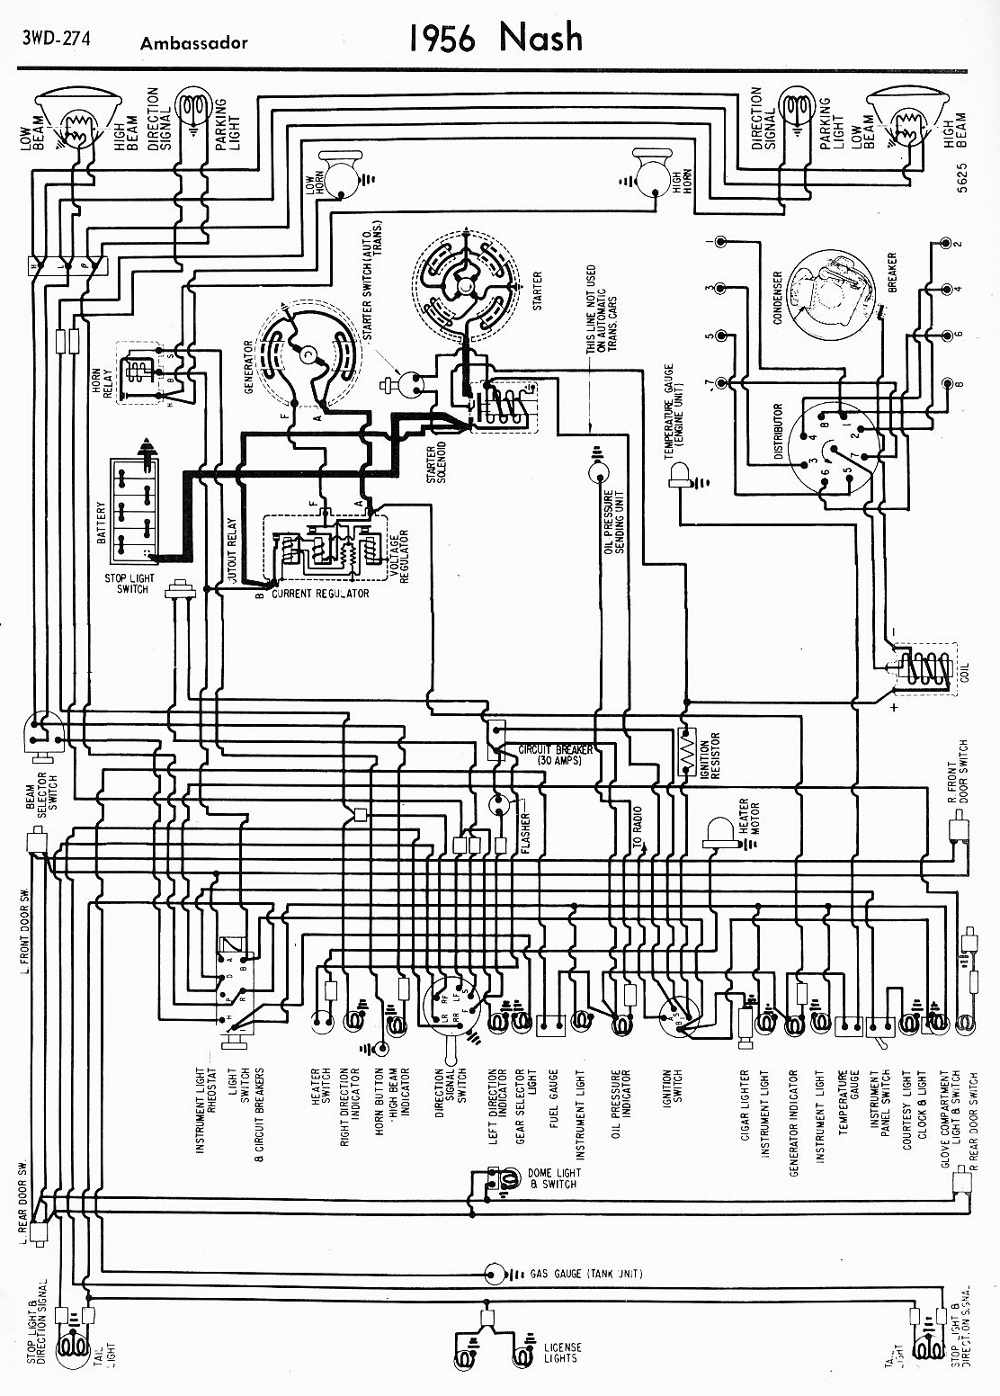 Wiring diagram for 1950 nash data wiring diagrams nash car manuals wiring diagrams pdf fault codes rh automotive manuals net wiring diagrams for heater fan wiring diagram for altronix rb1224 ccuart Choice Image